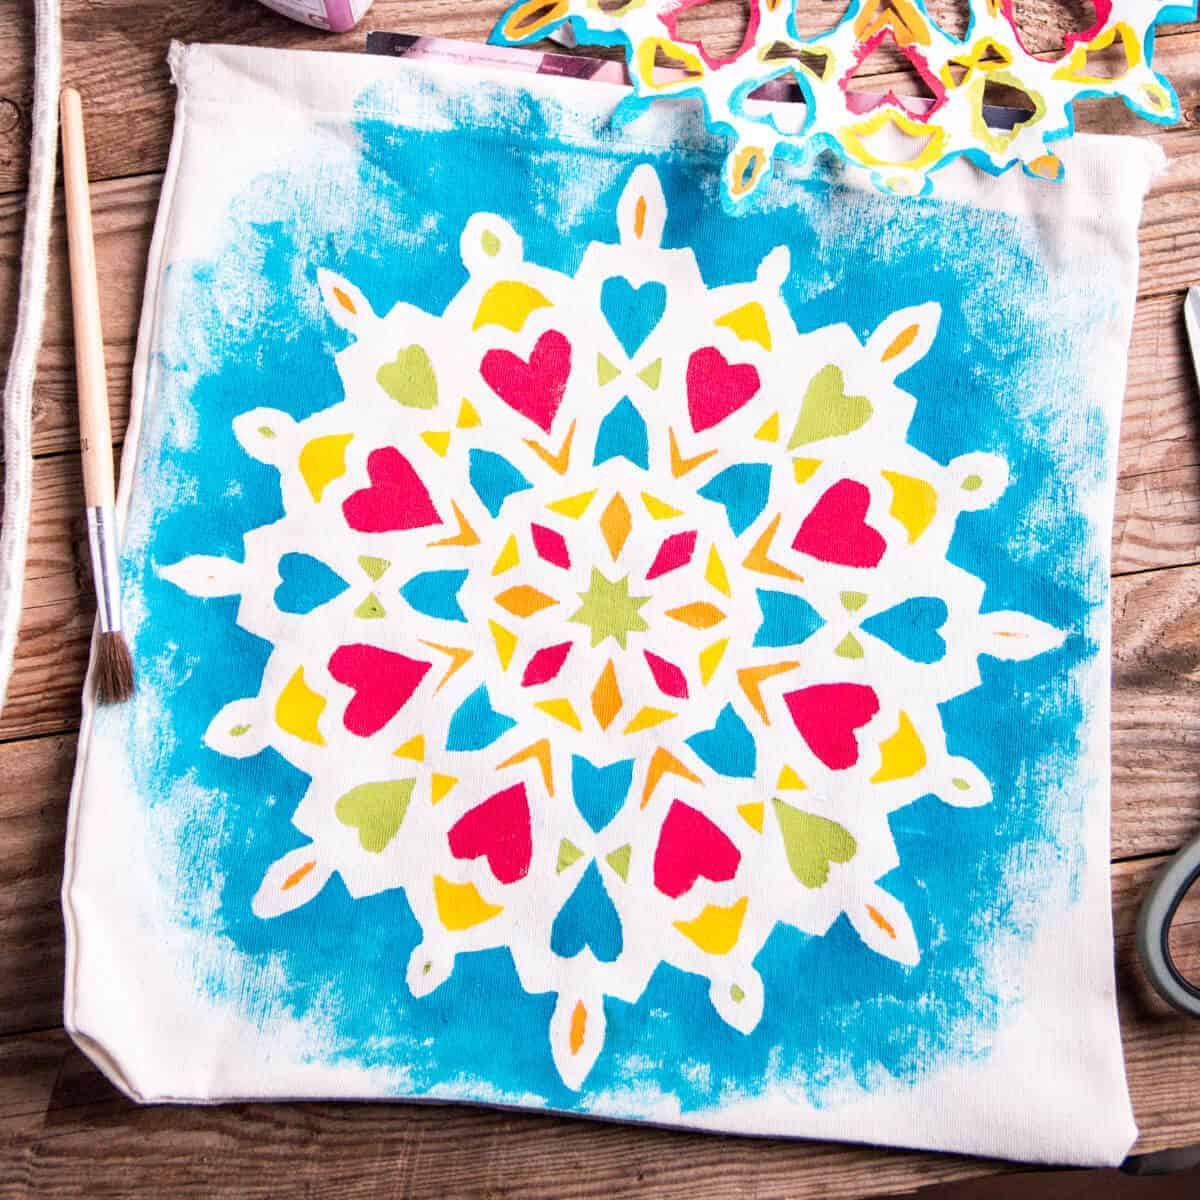 A cloth bag with a beautiful colorful mandala design painted on it with fabric paints.